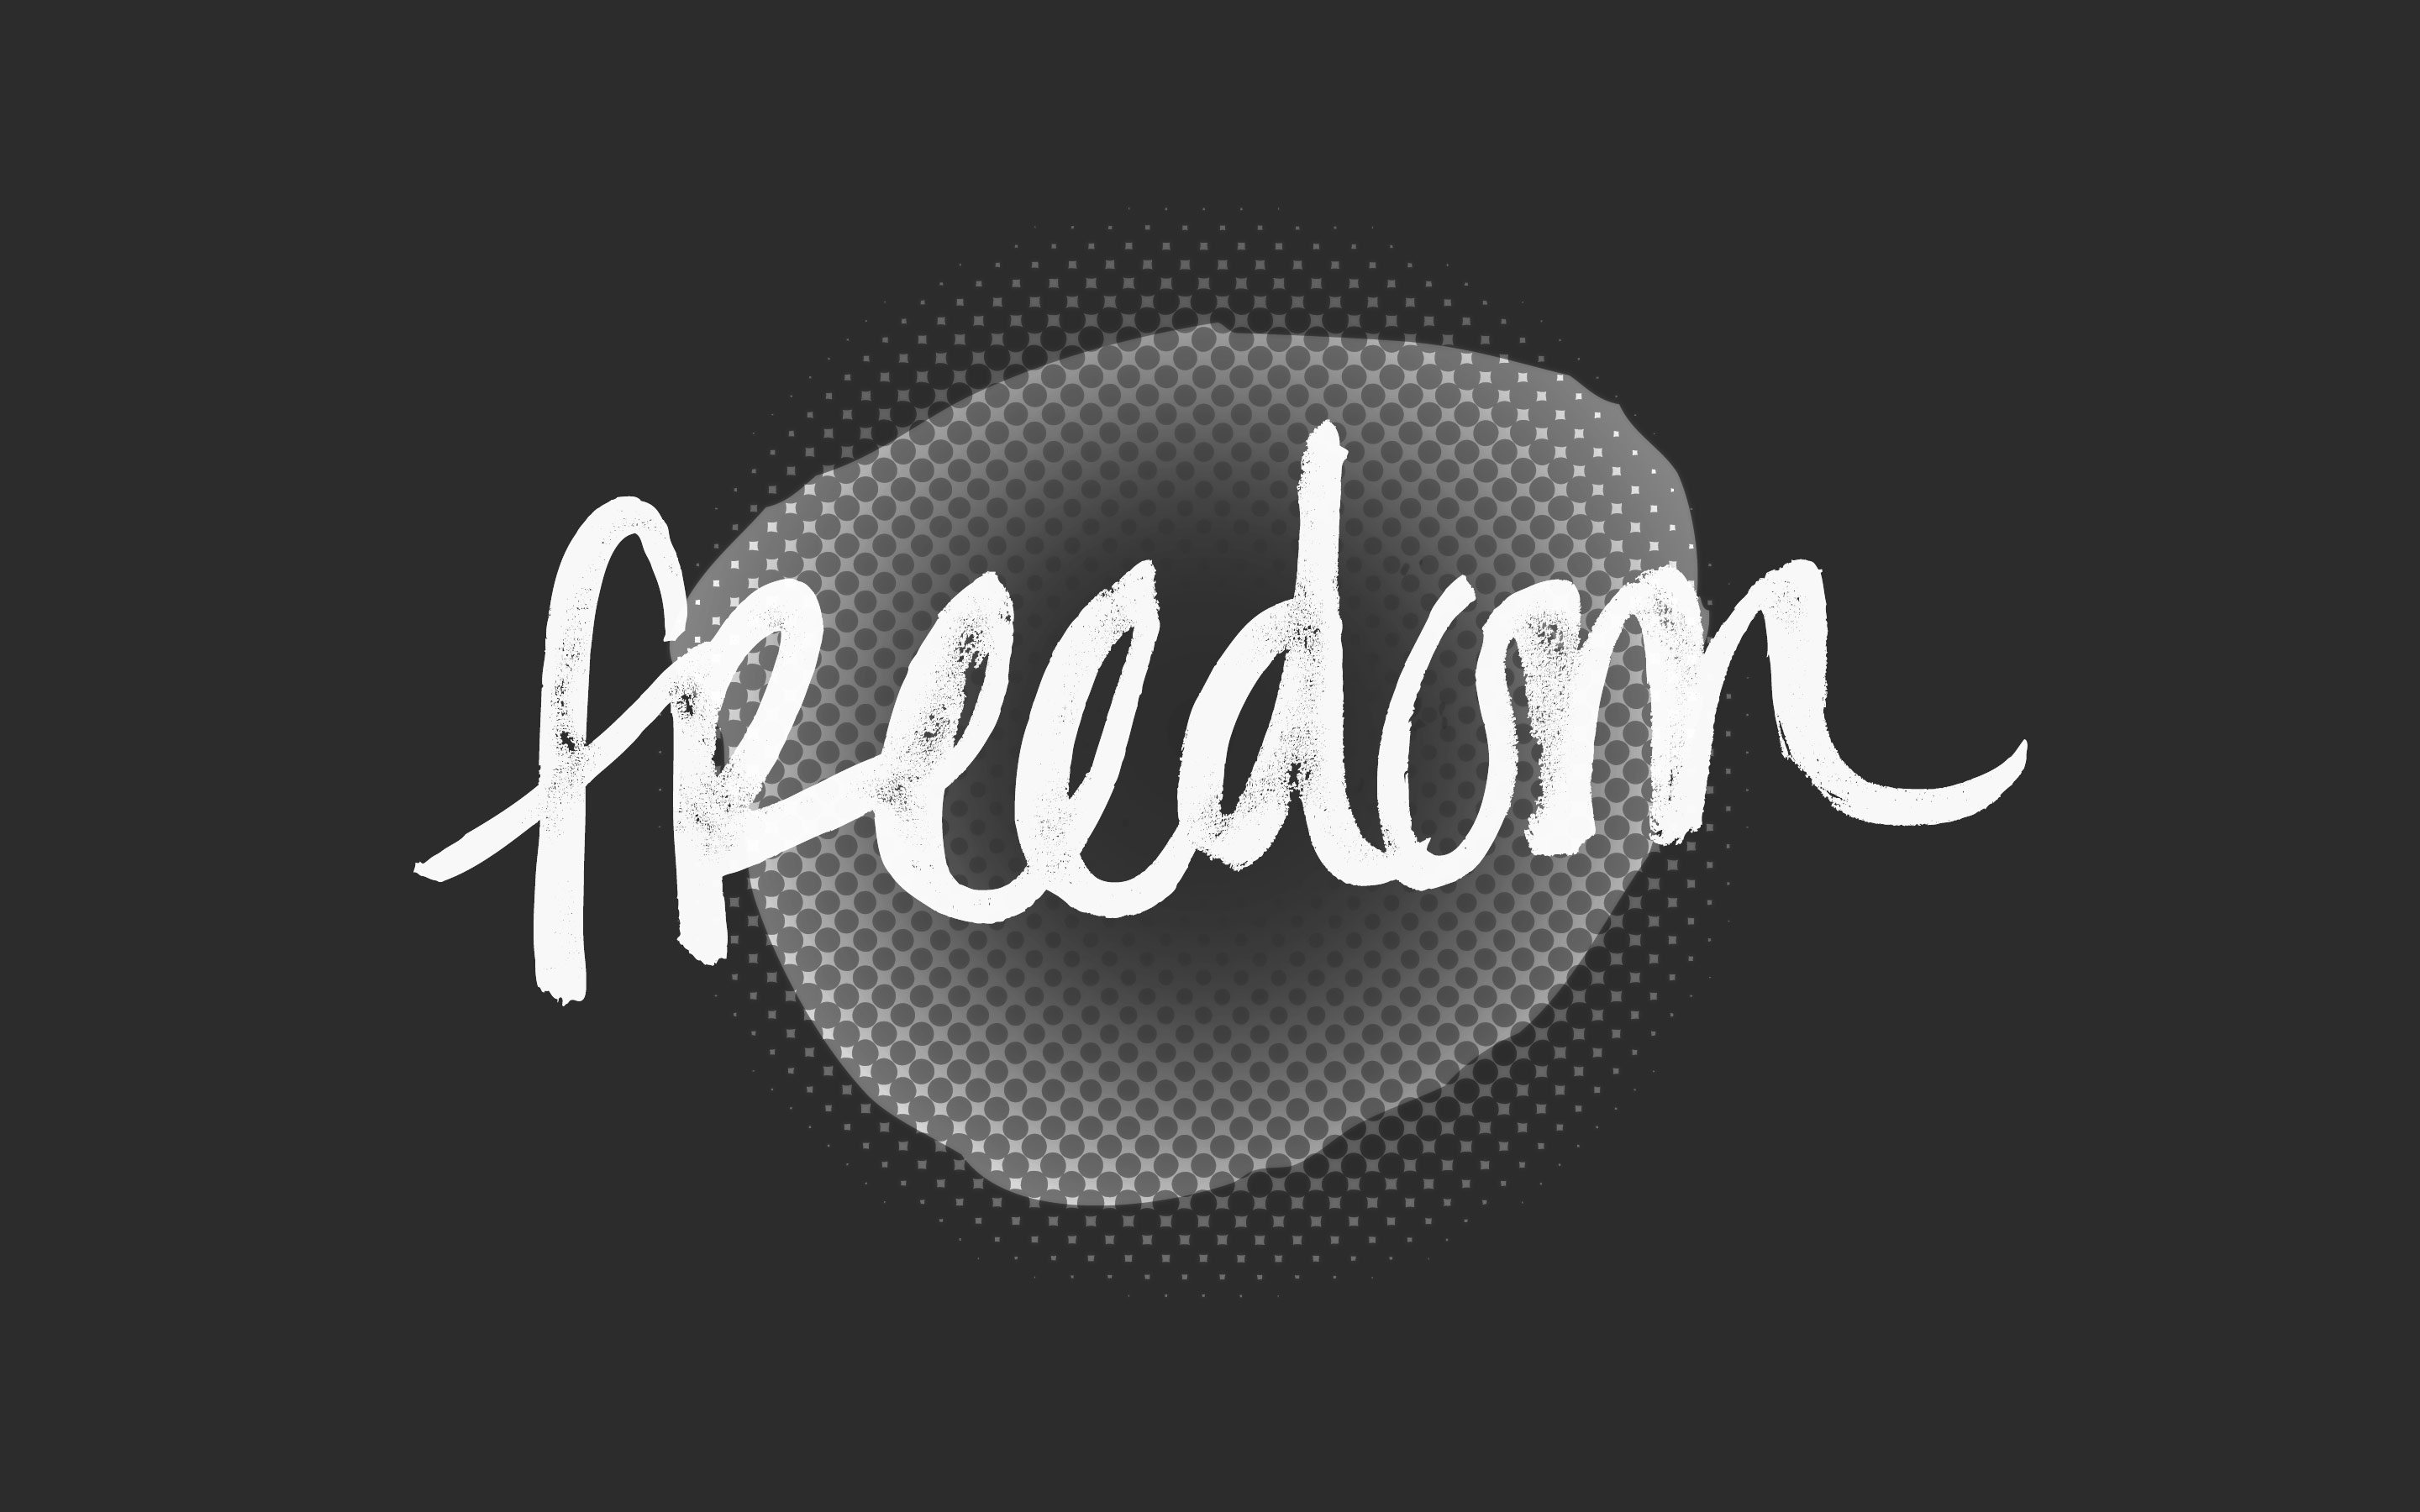 FreedomT-Shirt_Desktop_2880x1800_Portfolio